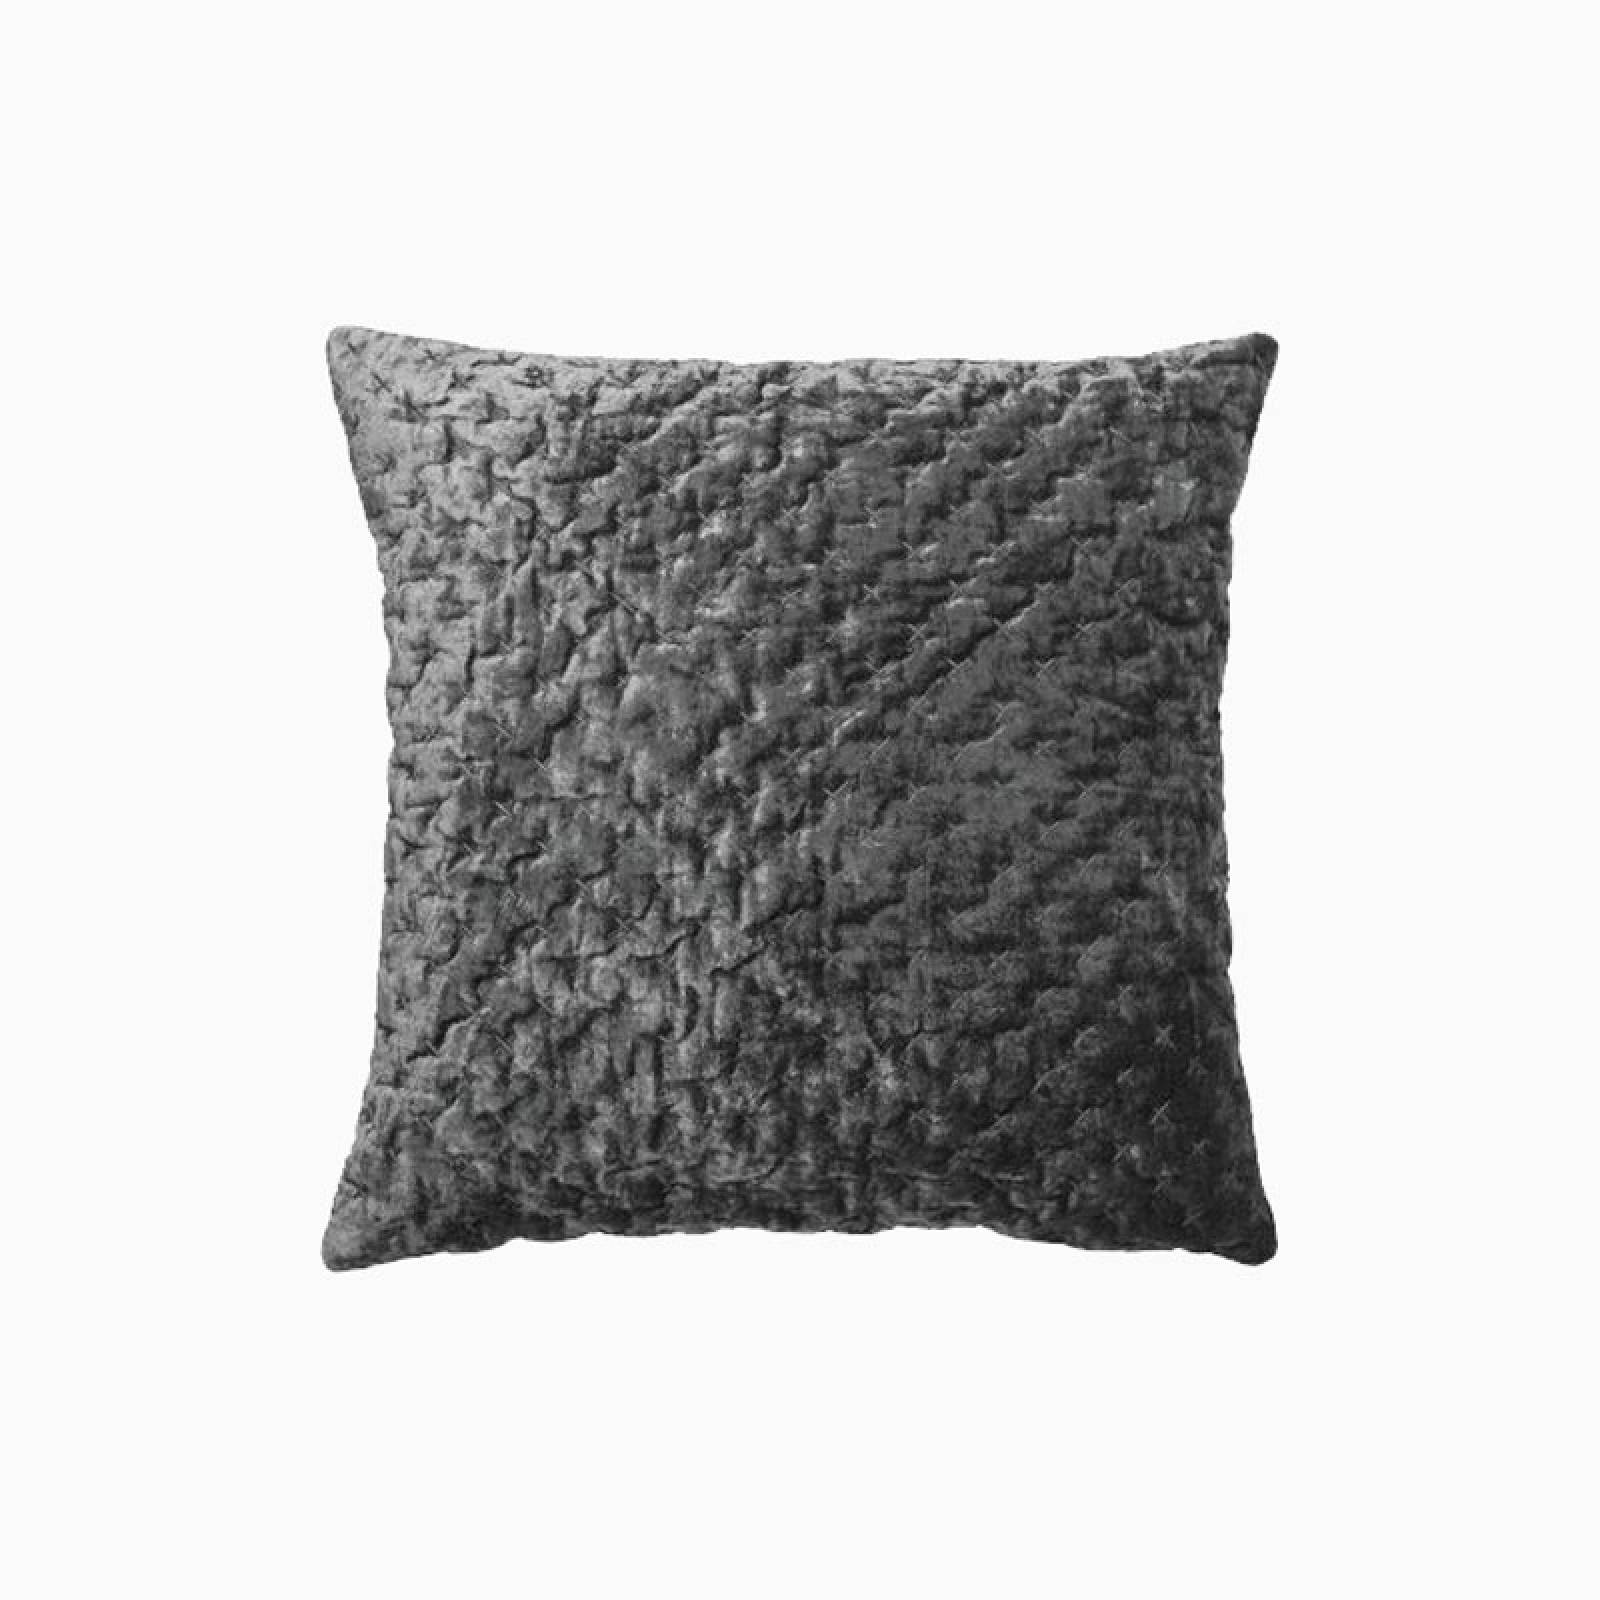 Square Velvet Embroidered Cushion In Steel thumbnails